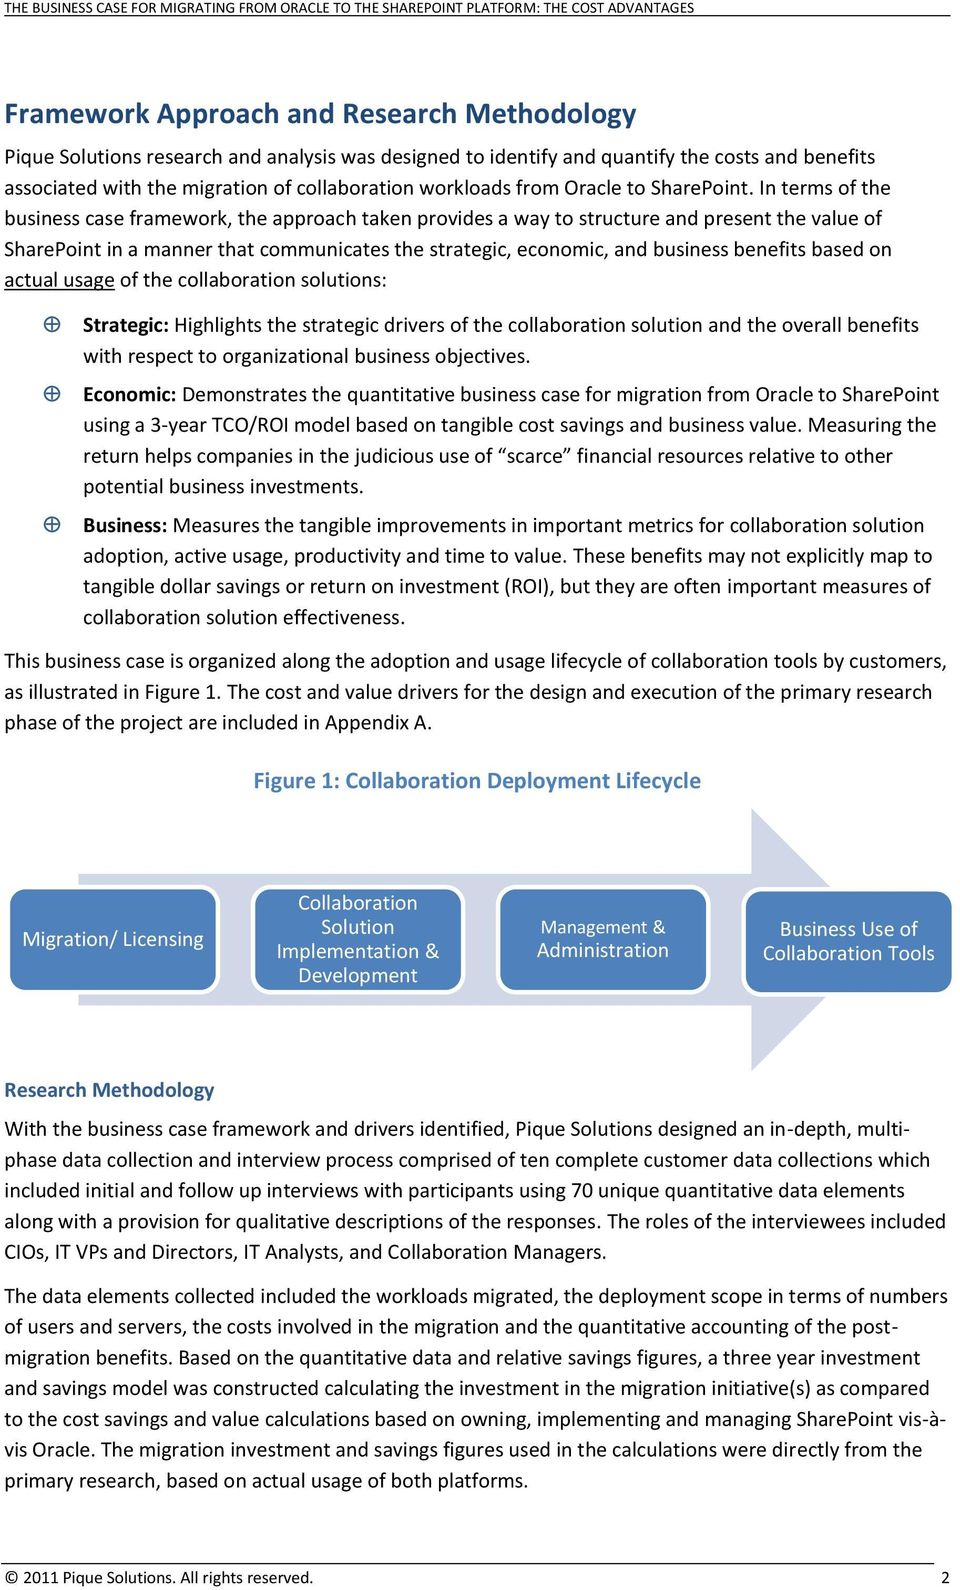 In terms of the business case framework, the approach taken provides a way to structure and present the value of SharePoint in a manner that communicates the strategic, economic, and business